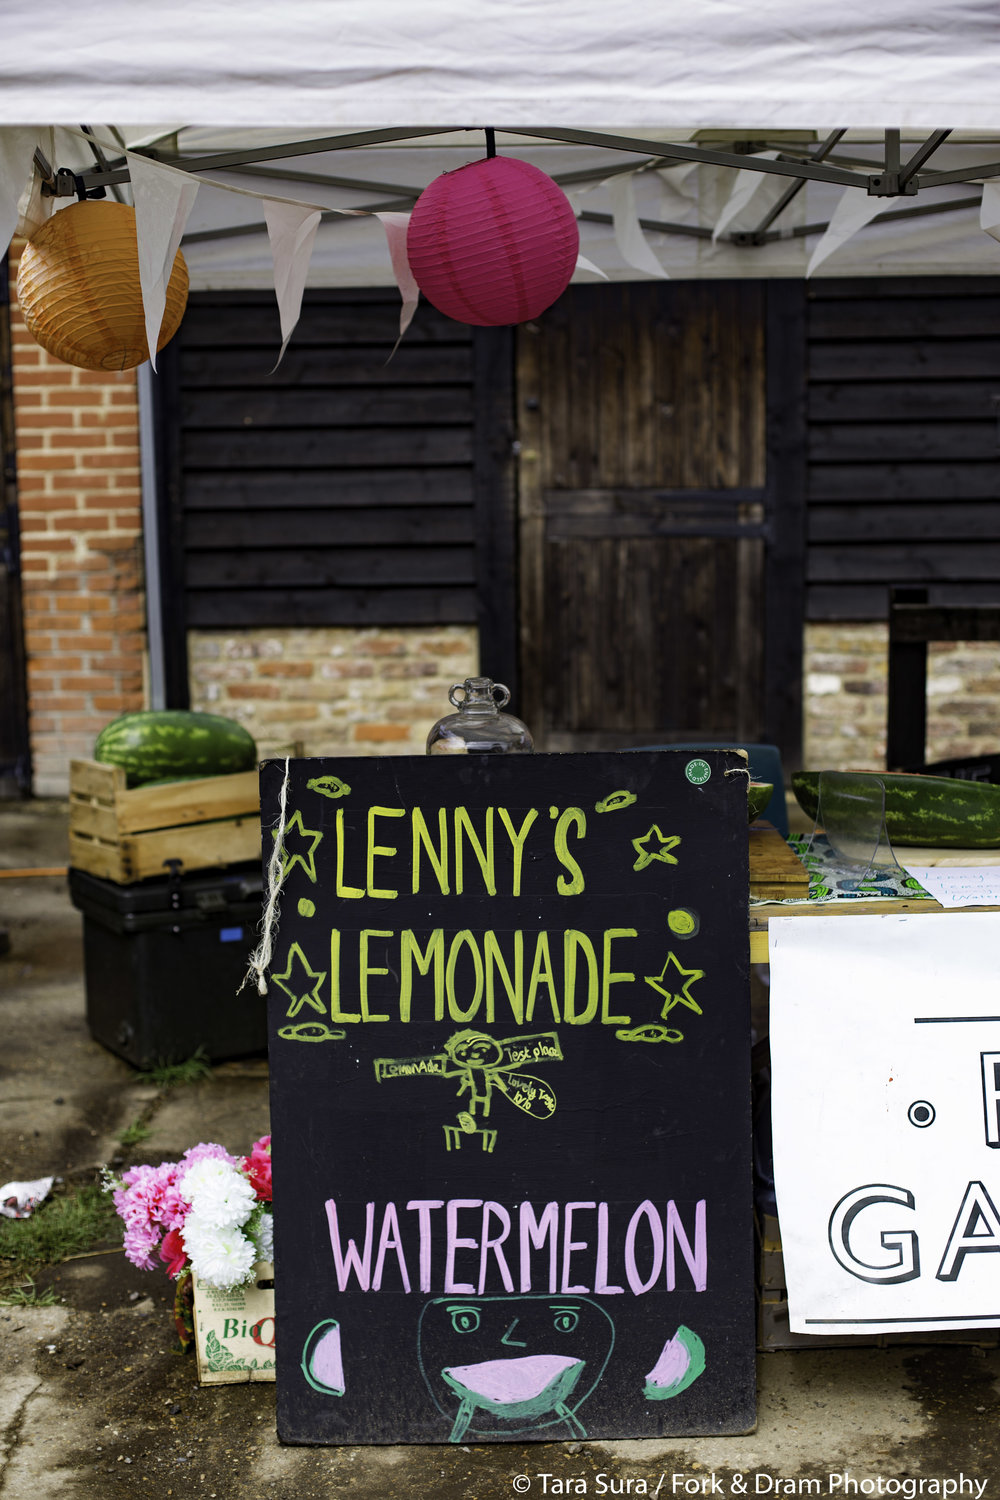 THE FOOD GATHERER  SERVES... LENNY'S LEMONADE (FOR LOMBOK)     Find out about upcoming Food Gatherer's food events and enjoy some welcome refreshment with water melon slices and Lenny's Lemonade which is being sold in aid of the relief work on the island of Lombok,  recently hit by earthquakes.     http://www.thefoodgatherer.com/       Photo: Tara Sura/ fork and Dram